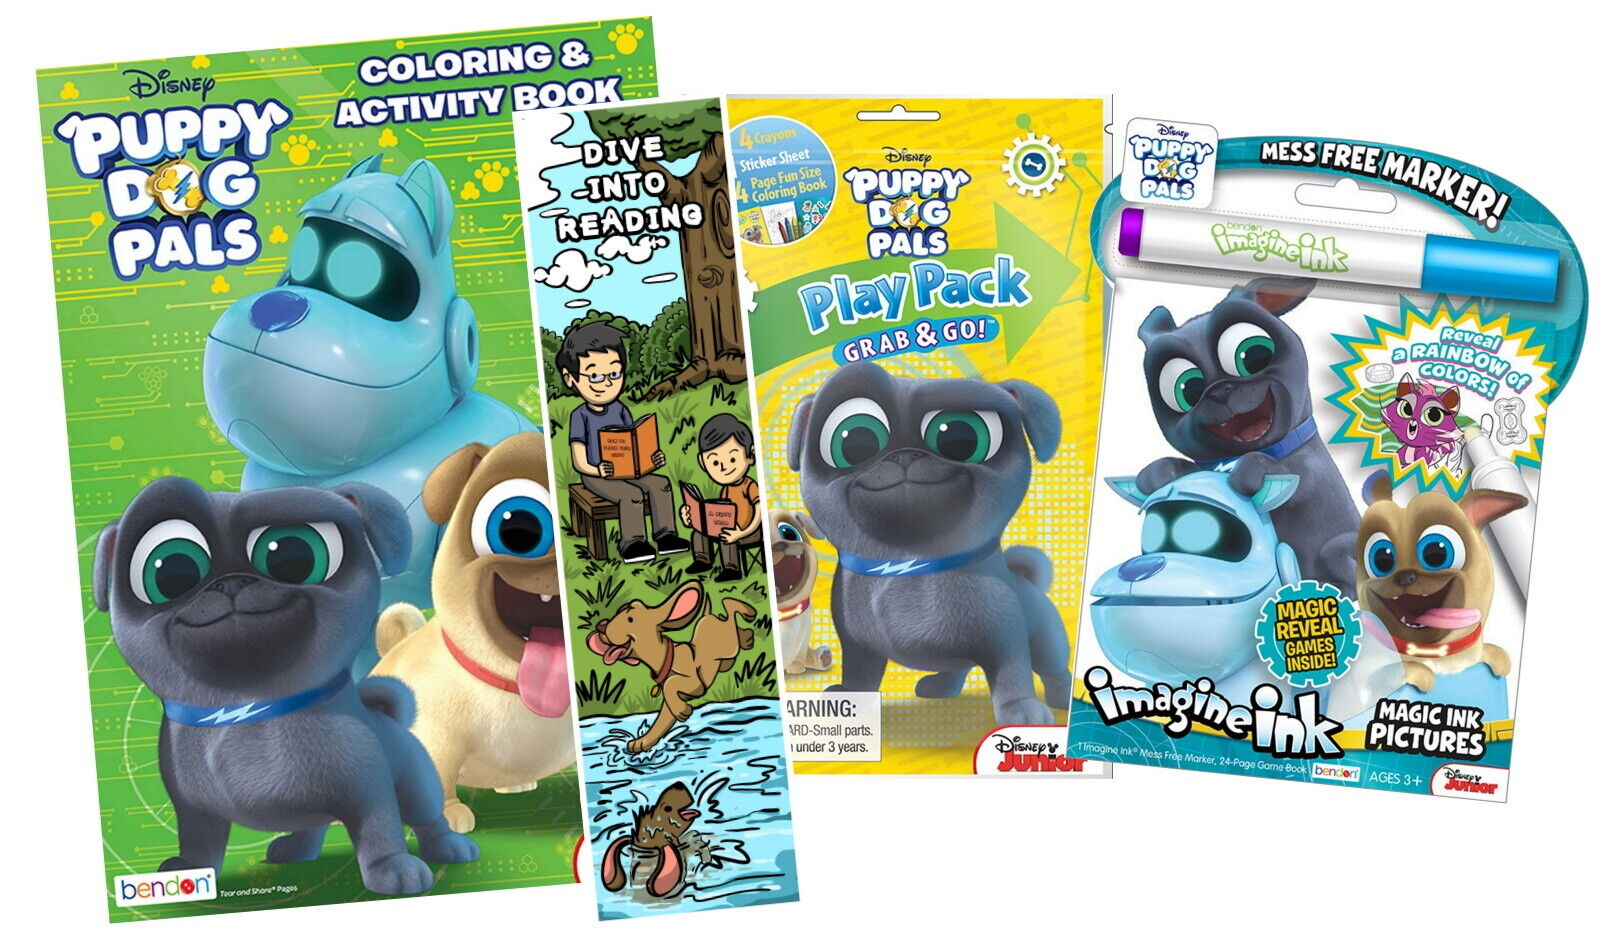 New Lot Of 3 Disney Puppy Dog Pals Coloring Activity Items